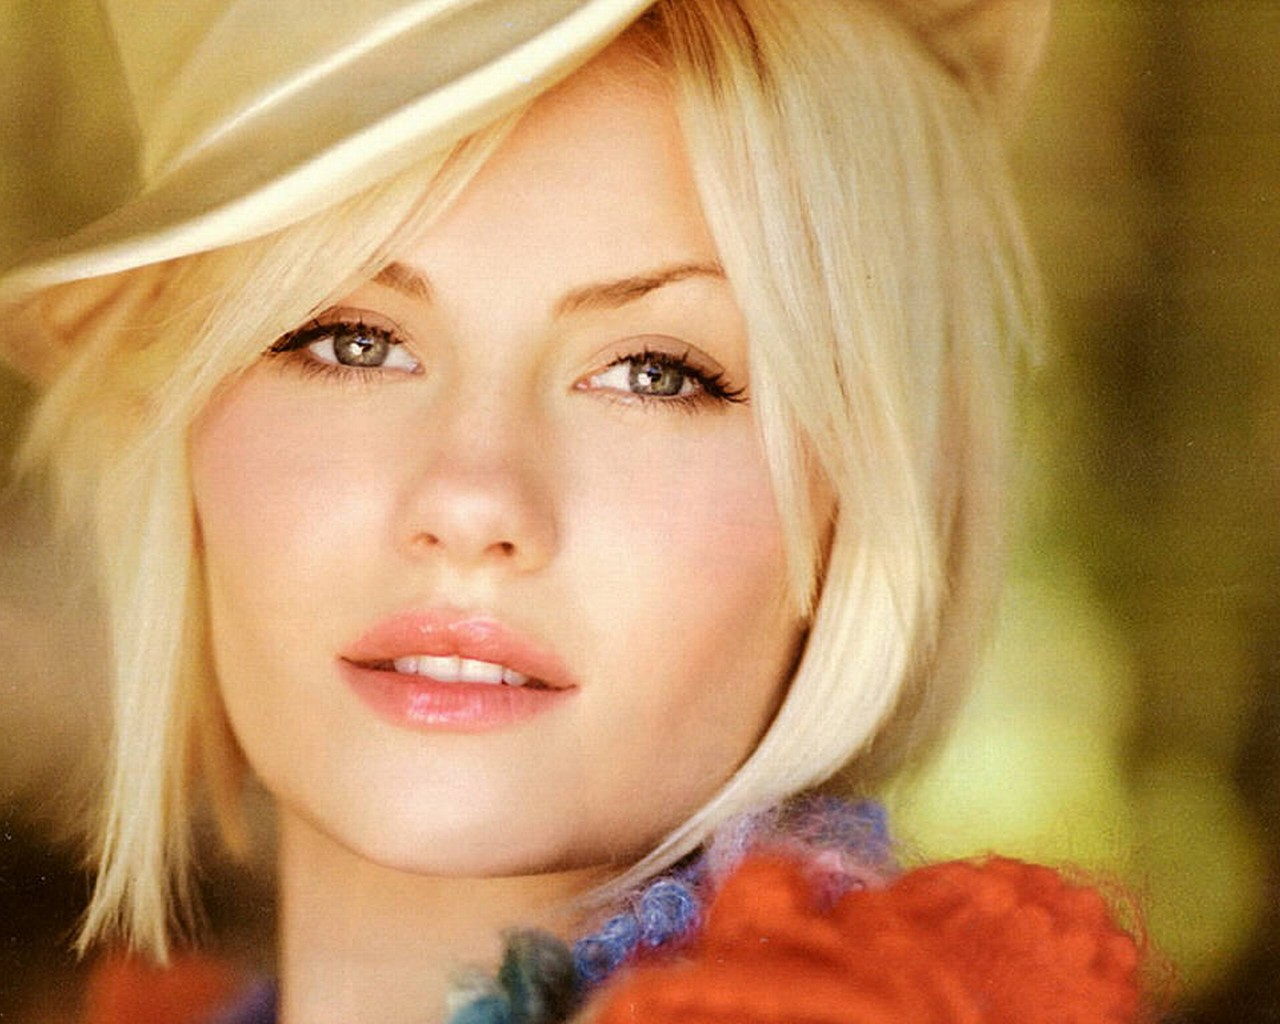 Elisha Cuthbert Hd Wallpapers: Download Elisha Cuthbert Wallpaper